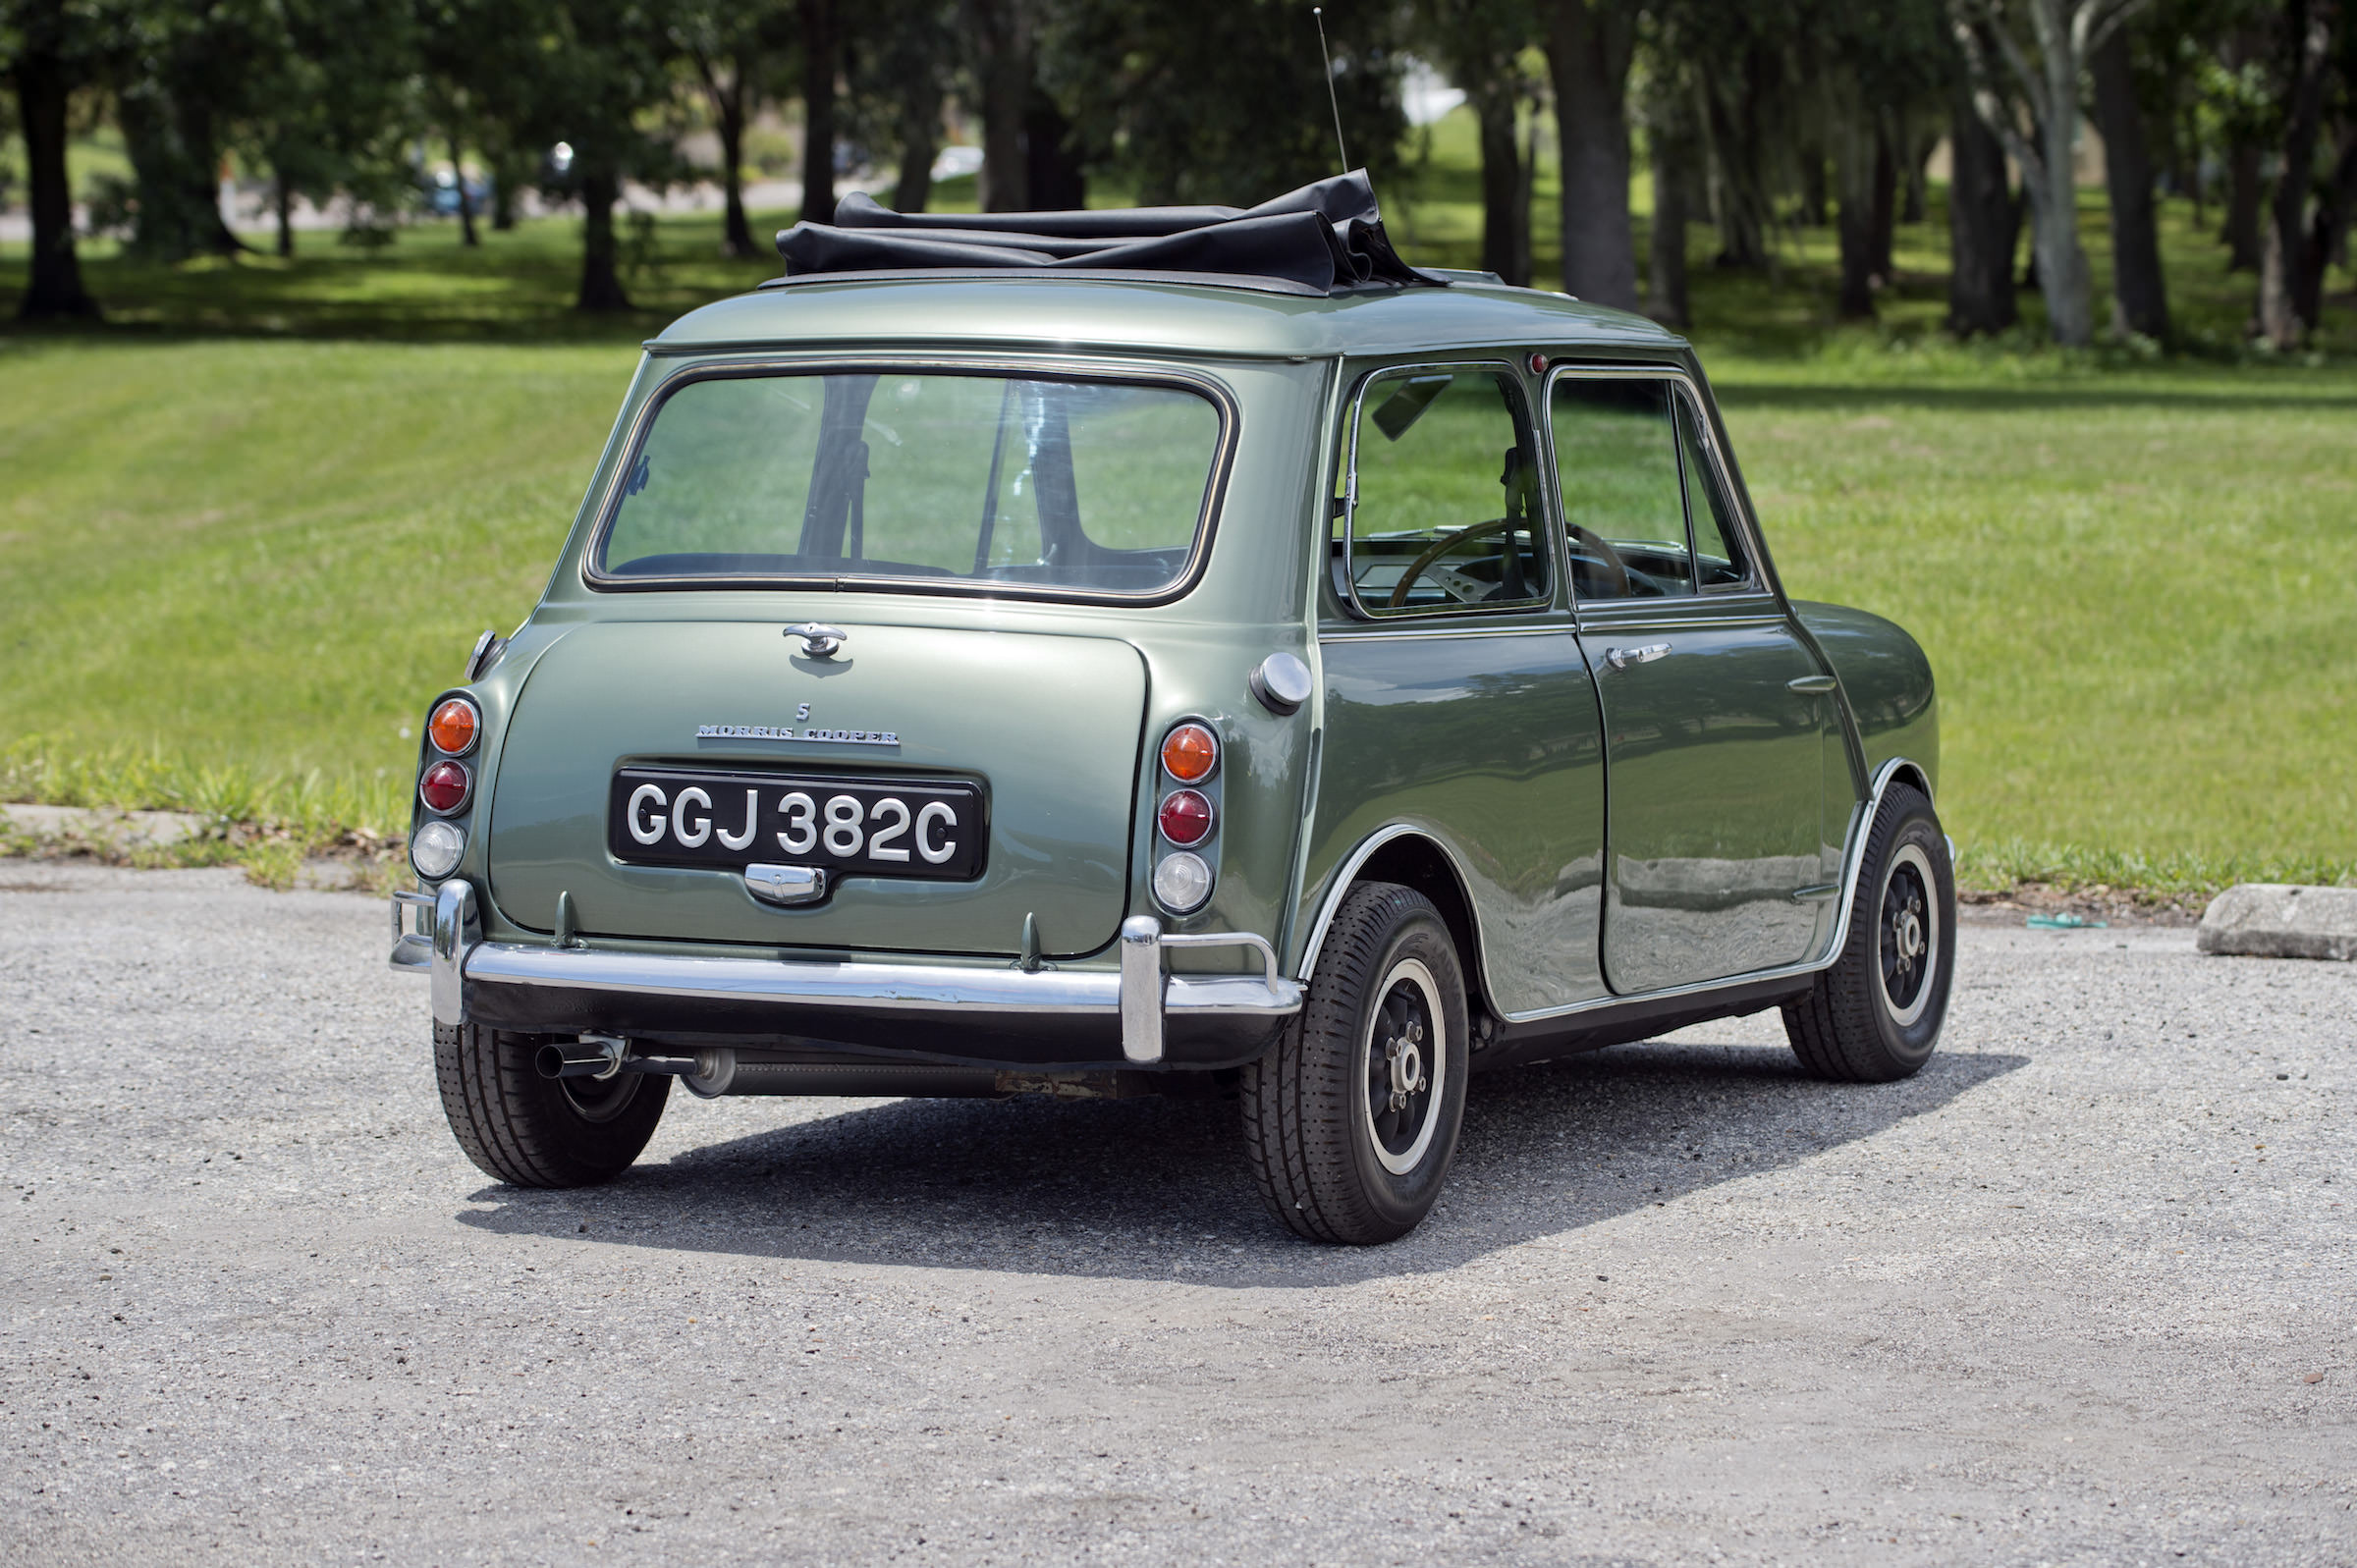 sir paul mccartney 39 s mini cooper s is for sale. Black Bedroom Furniture Sets. Home Design Ideas